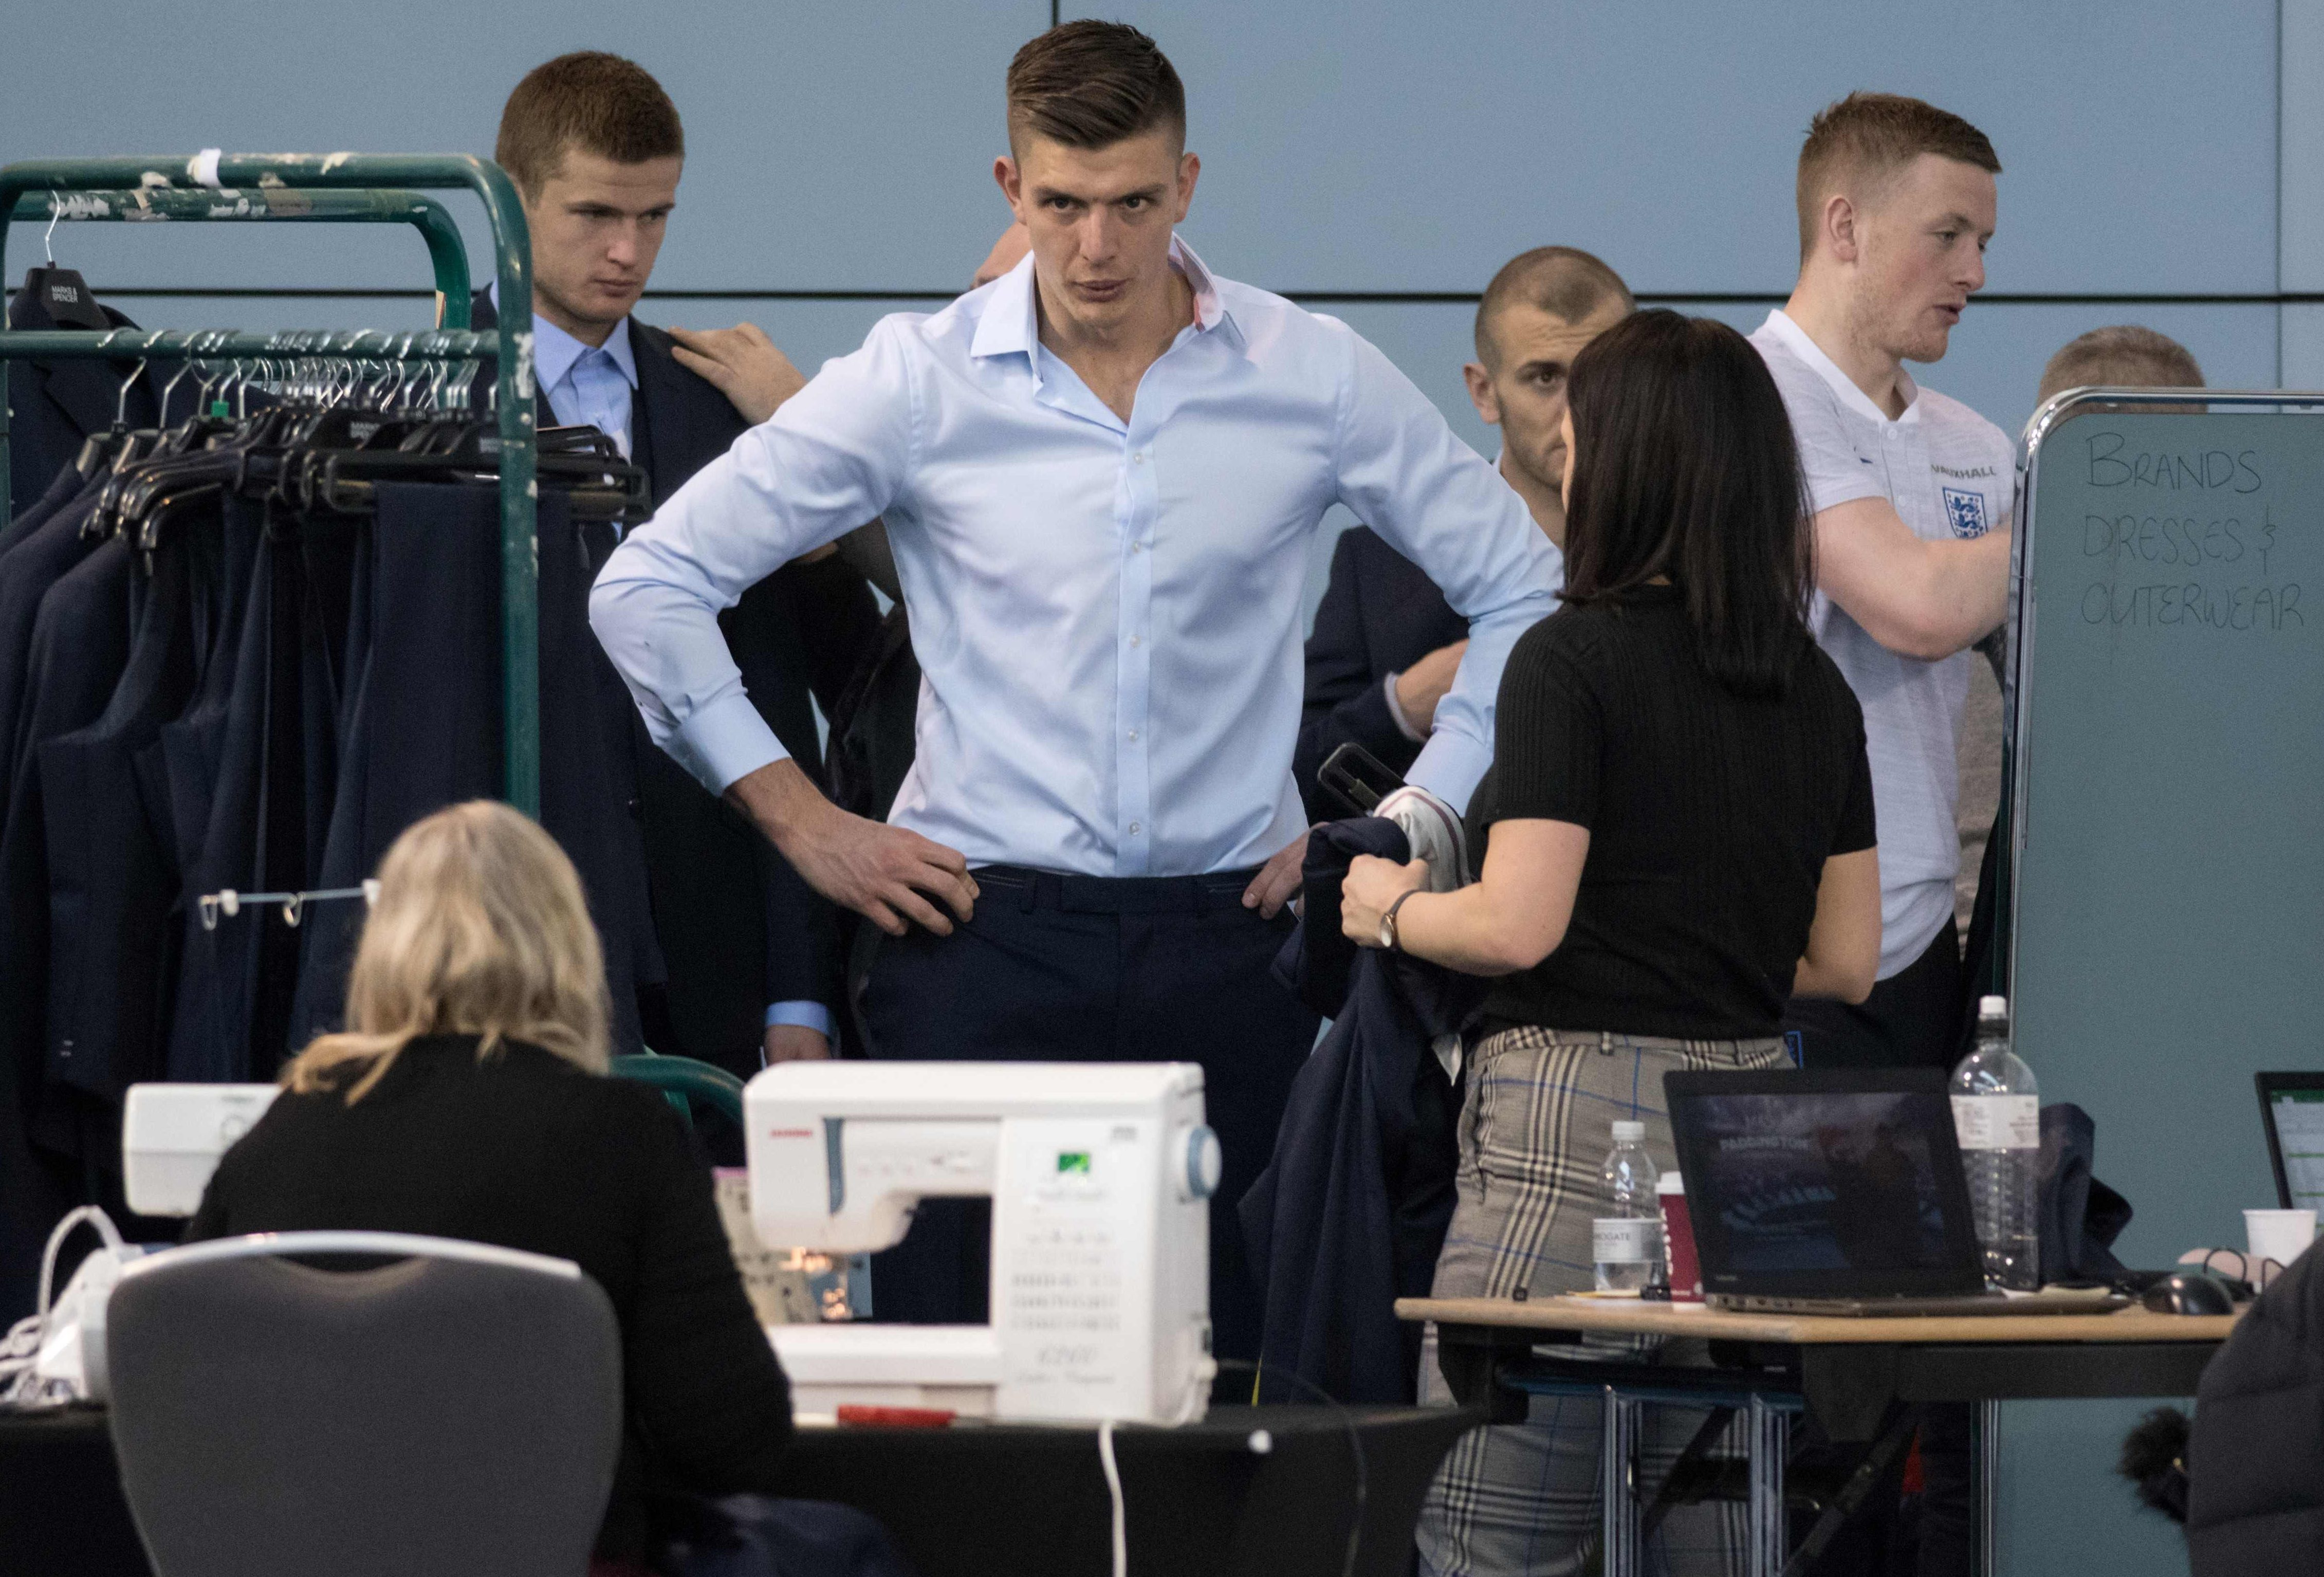 Nick Pope must feel part of the Three Lions scene now as he gets fitted for a suit